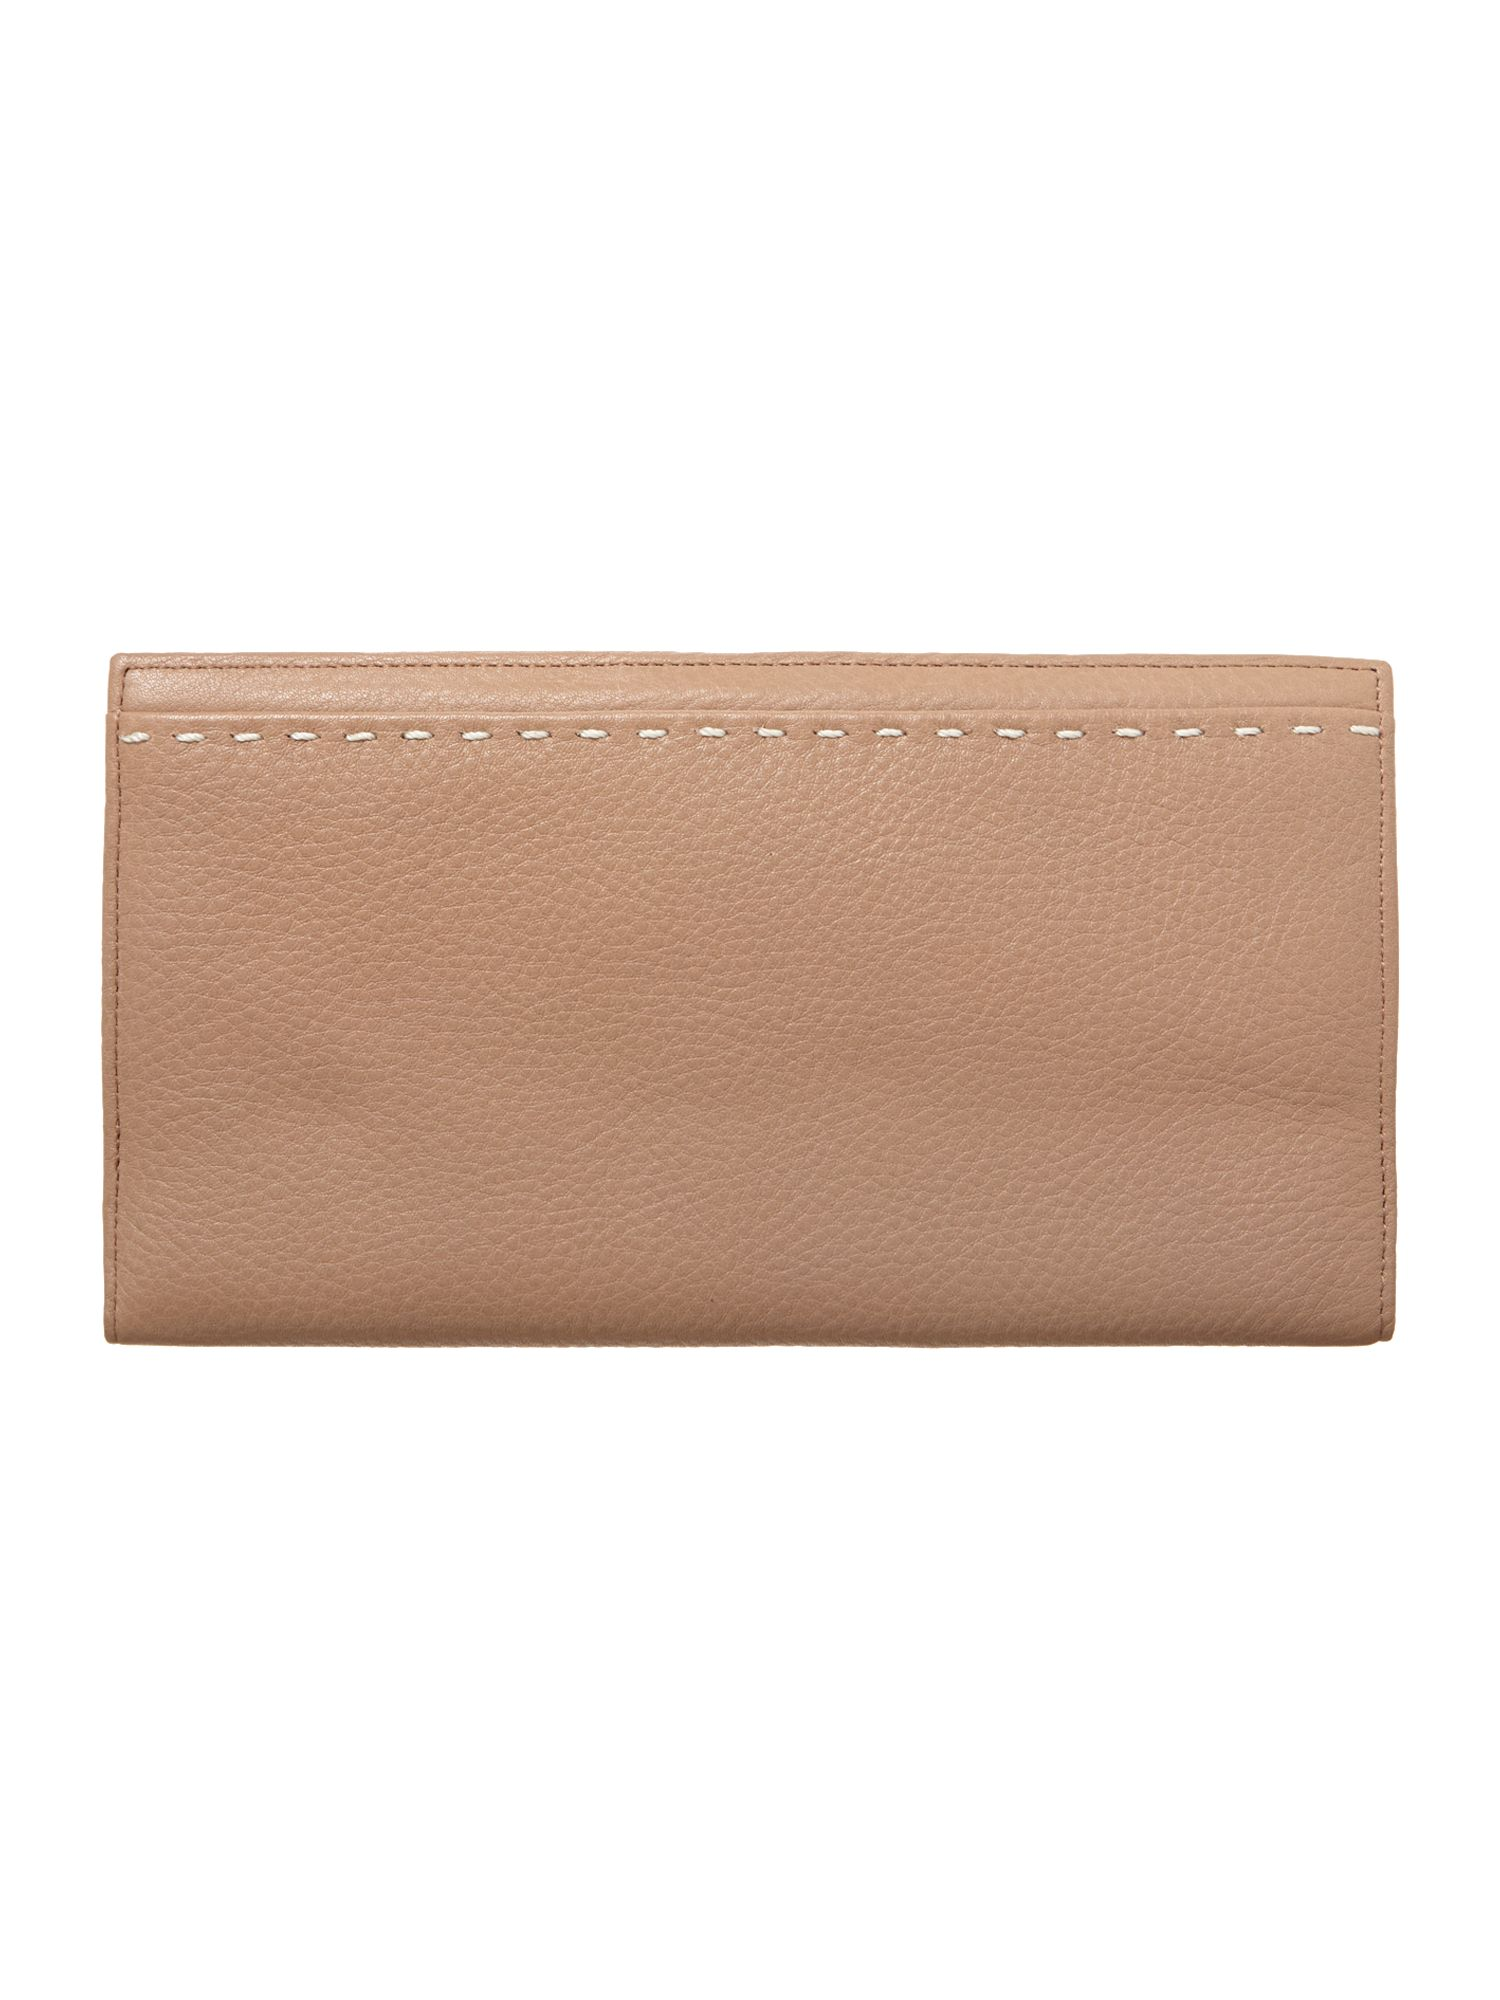 Neutral leather travel purse